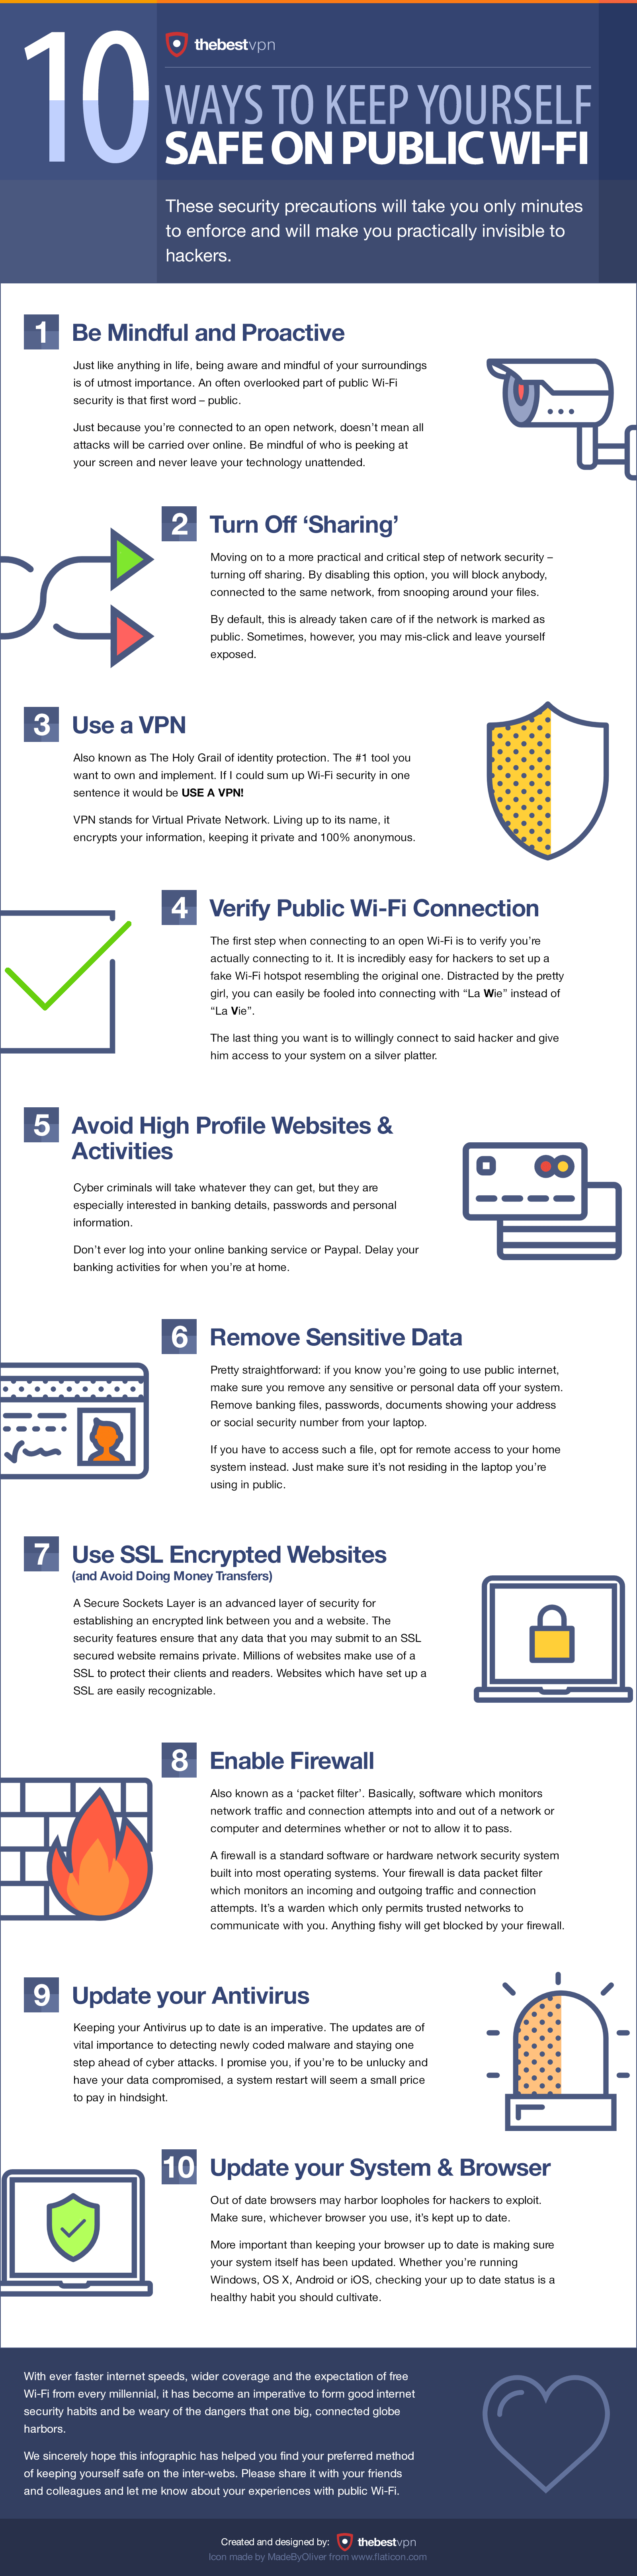 Safe Public WiFi Browsing Infographic